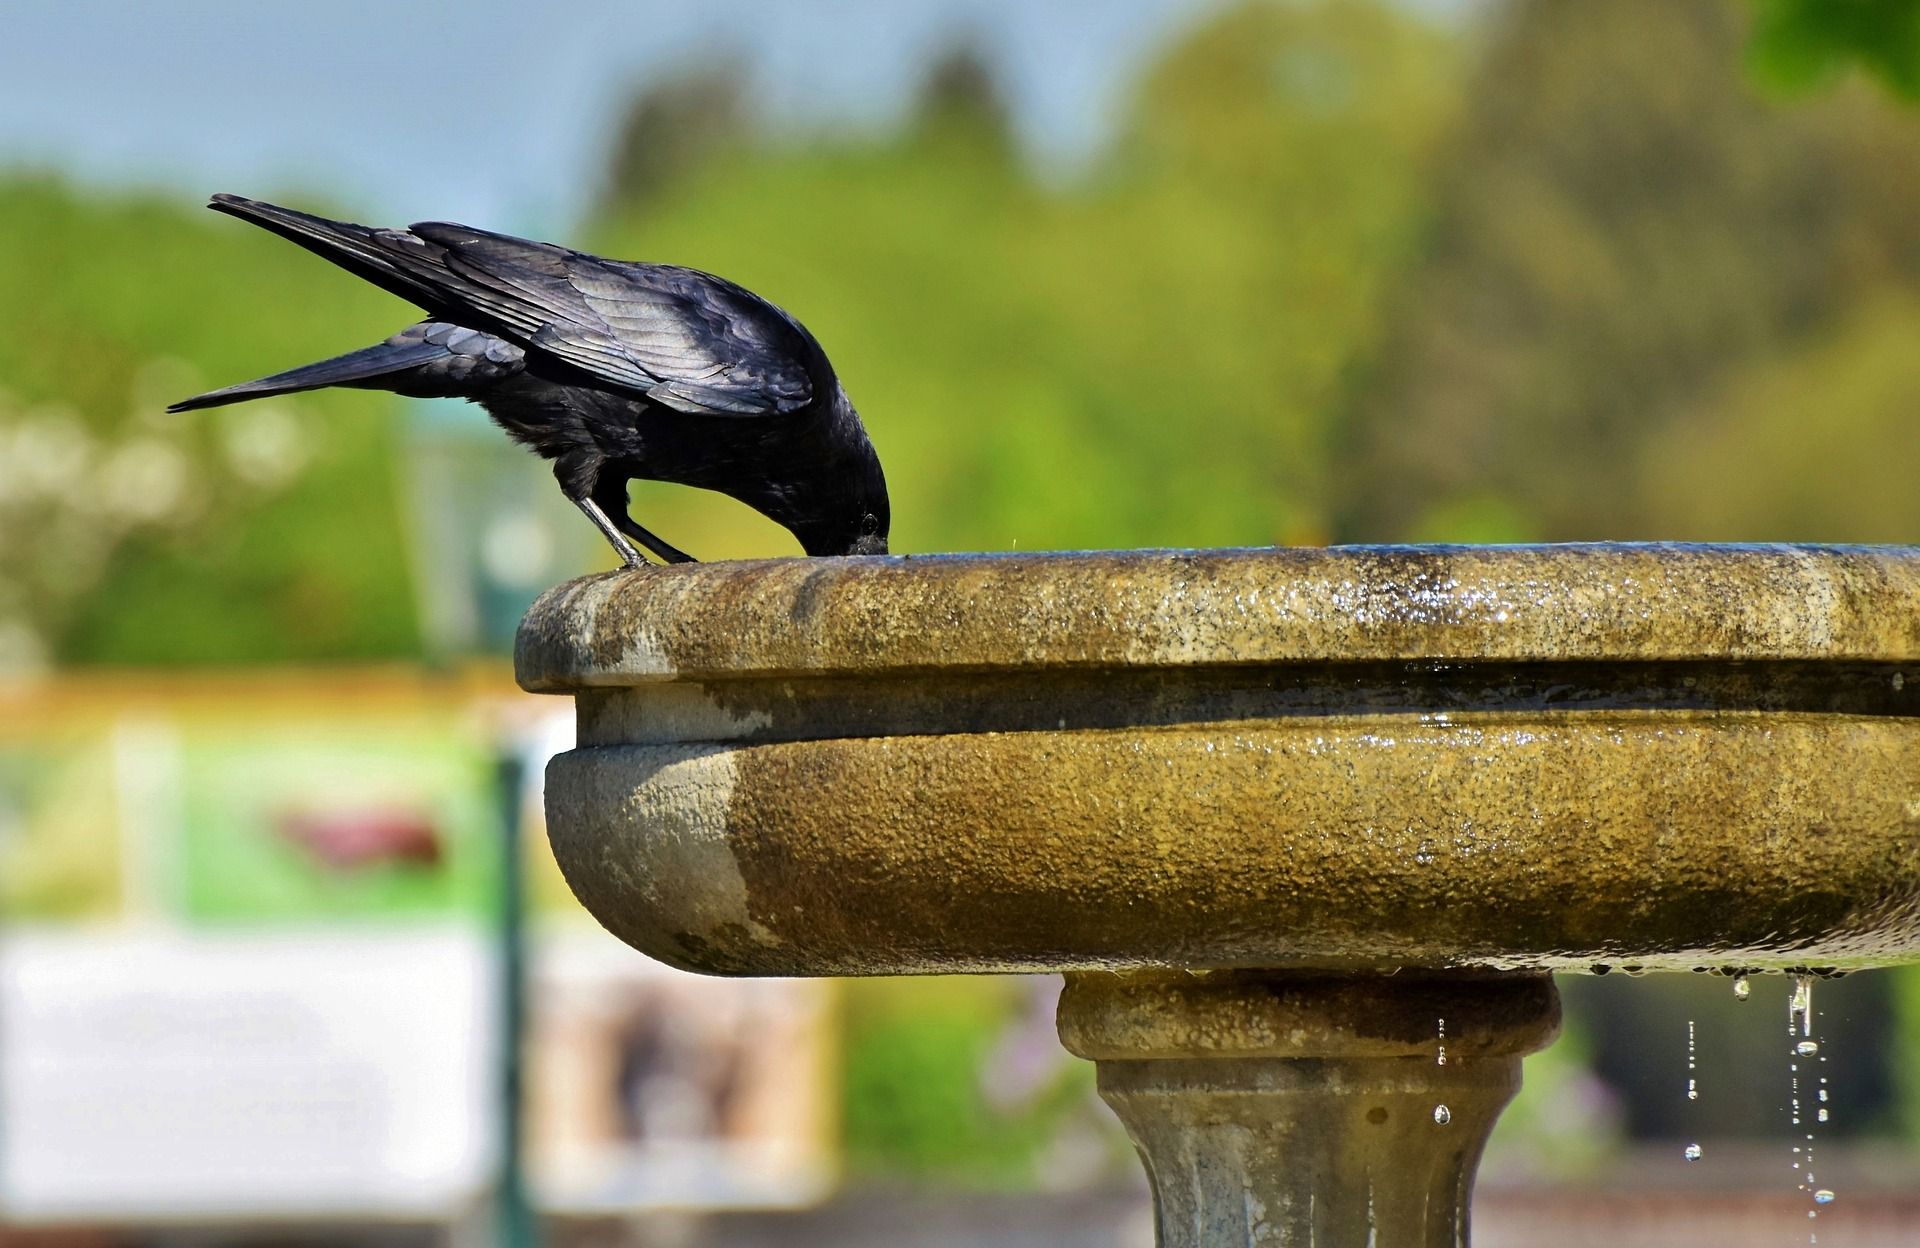 Why do we feed crows before a meal?